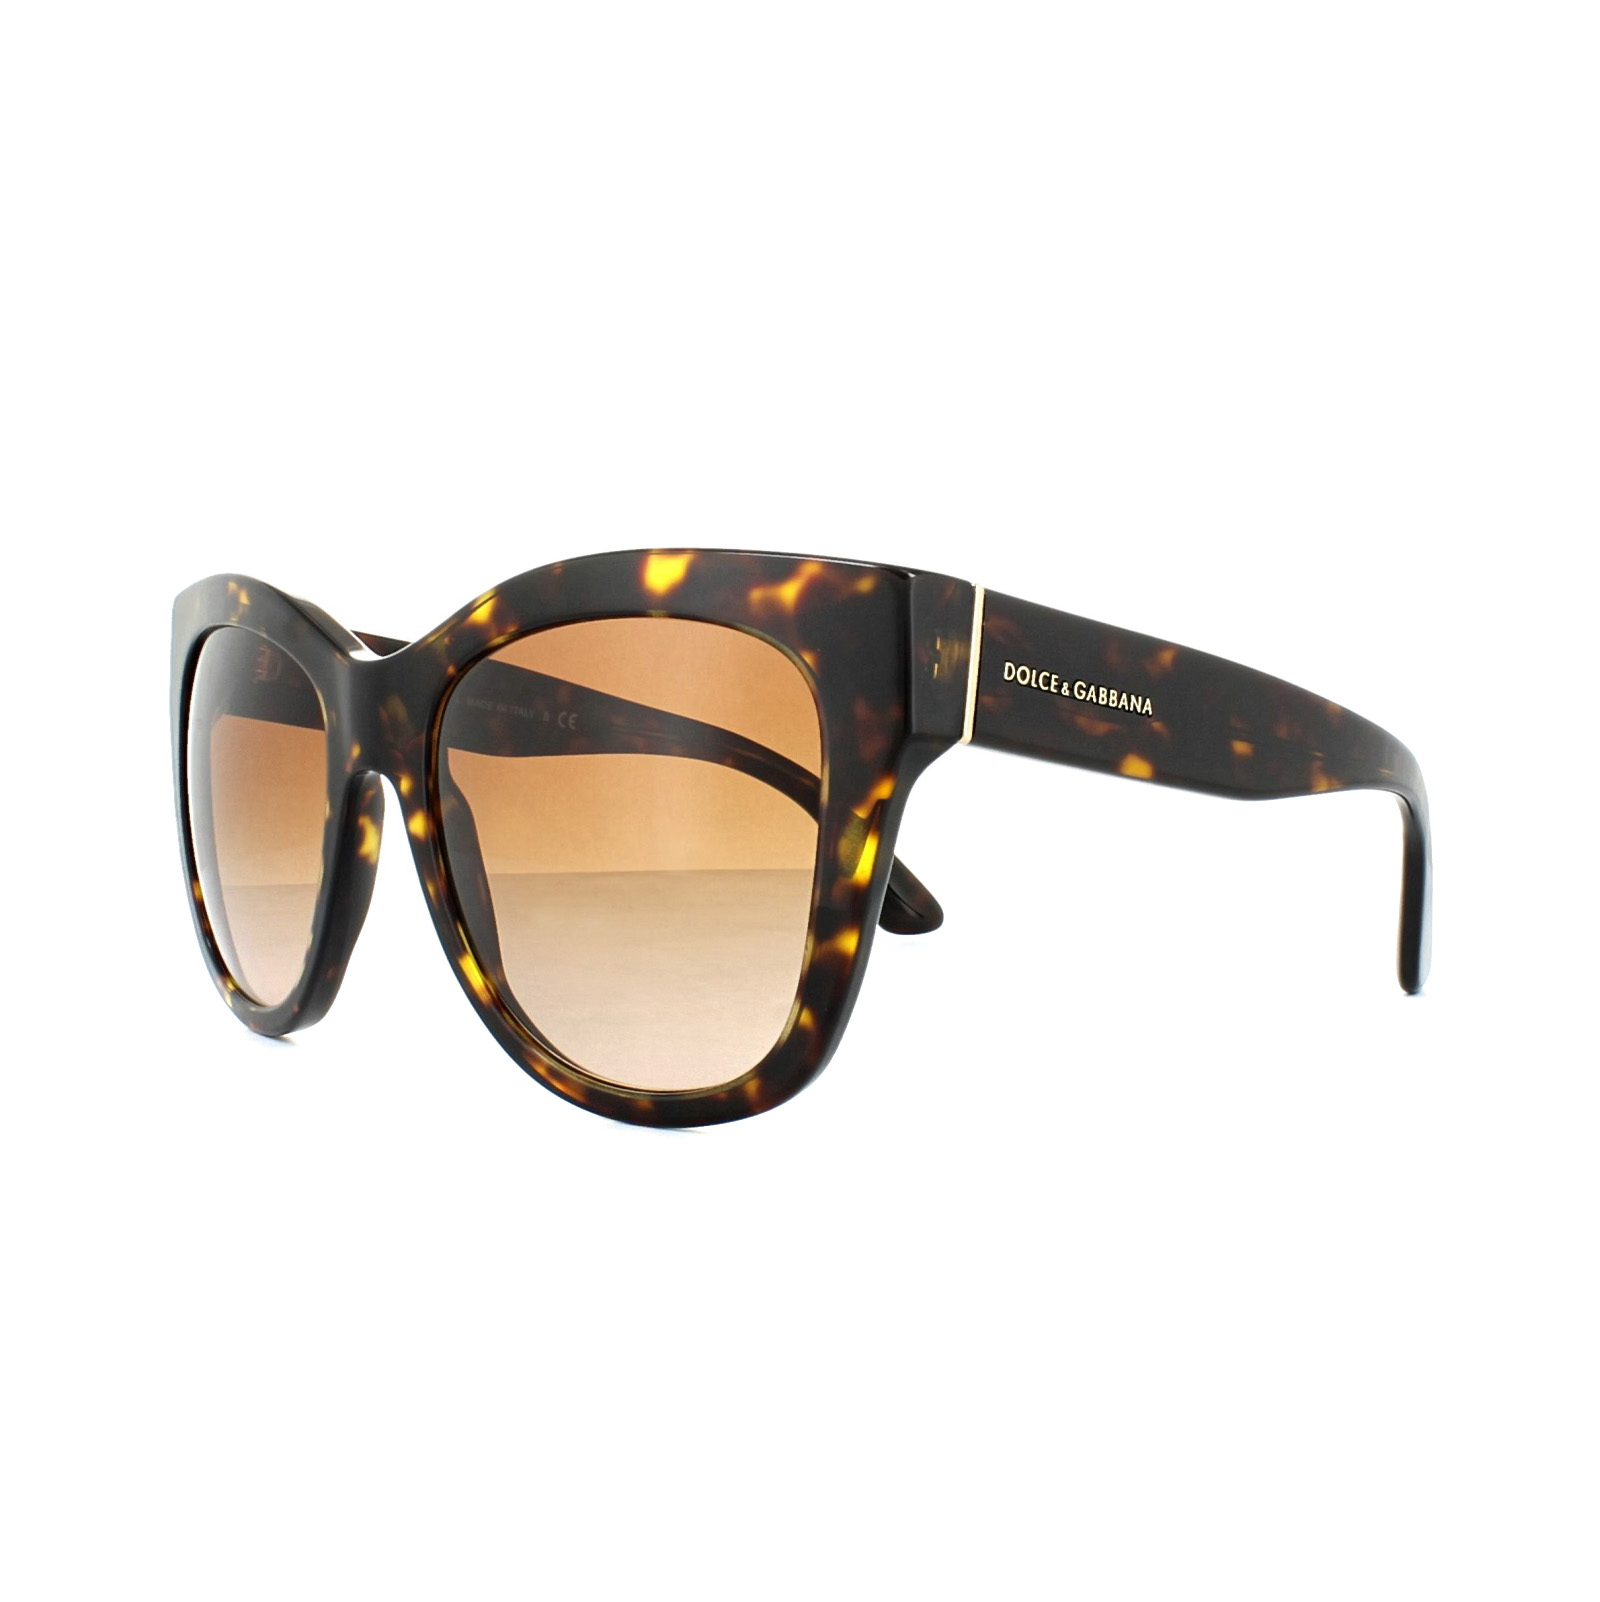 285d52ef40bc Details about Dolce & Gabbana Sunglasses 4270 502/13 Havana Brown Gradient